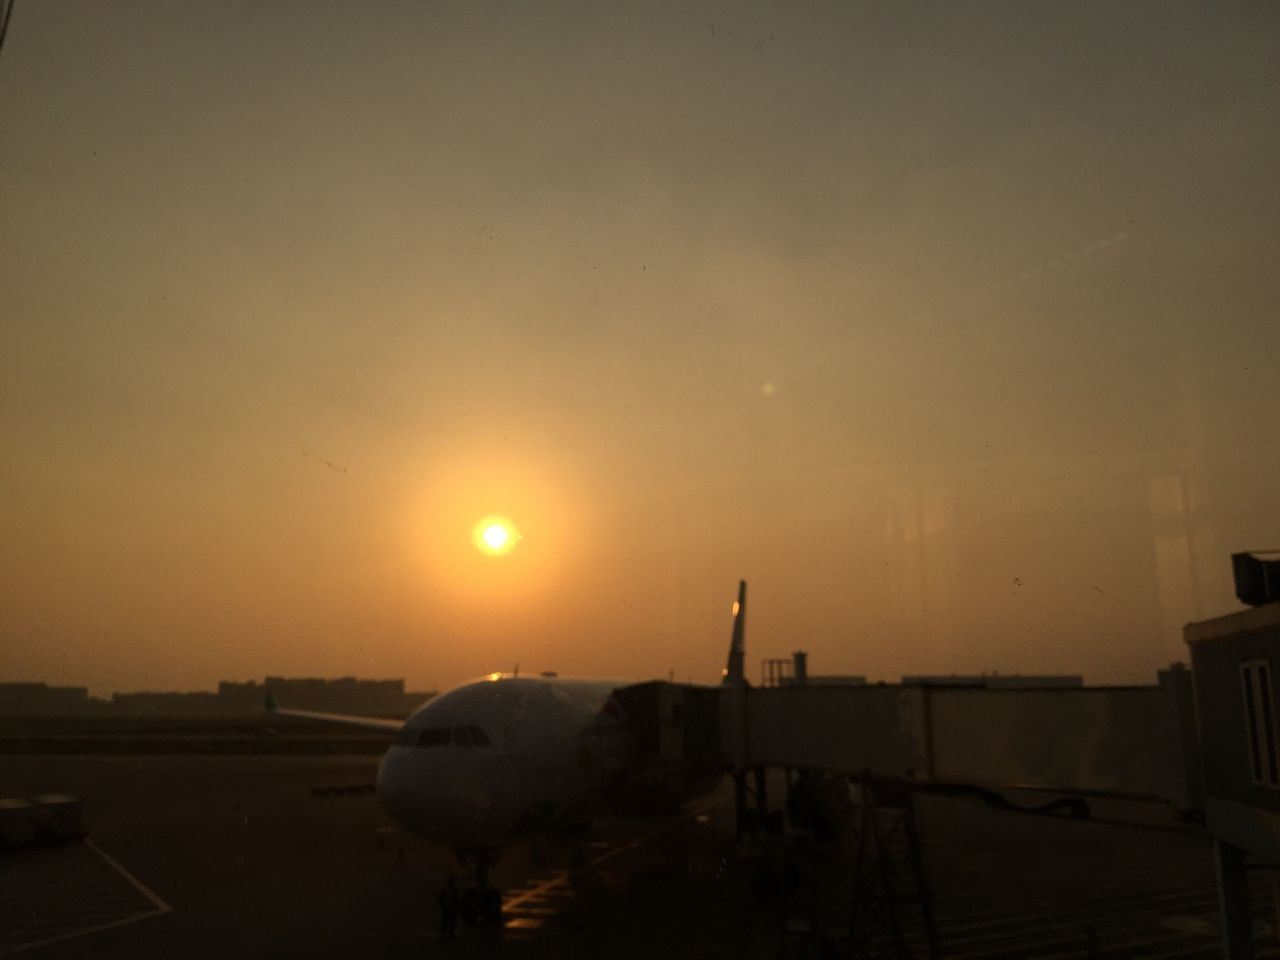 sunset, sun, air vehicle, transportation, sky, silhouette, airplane, mode of transport, outdoors, airport, nature, real people, airport runway, men, one person, commercial airplane, day, people